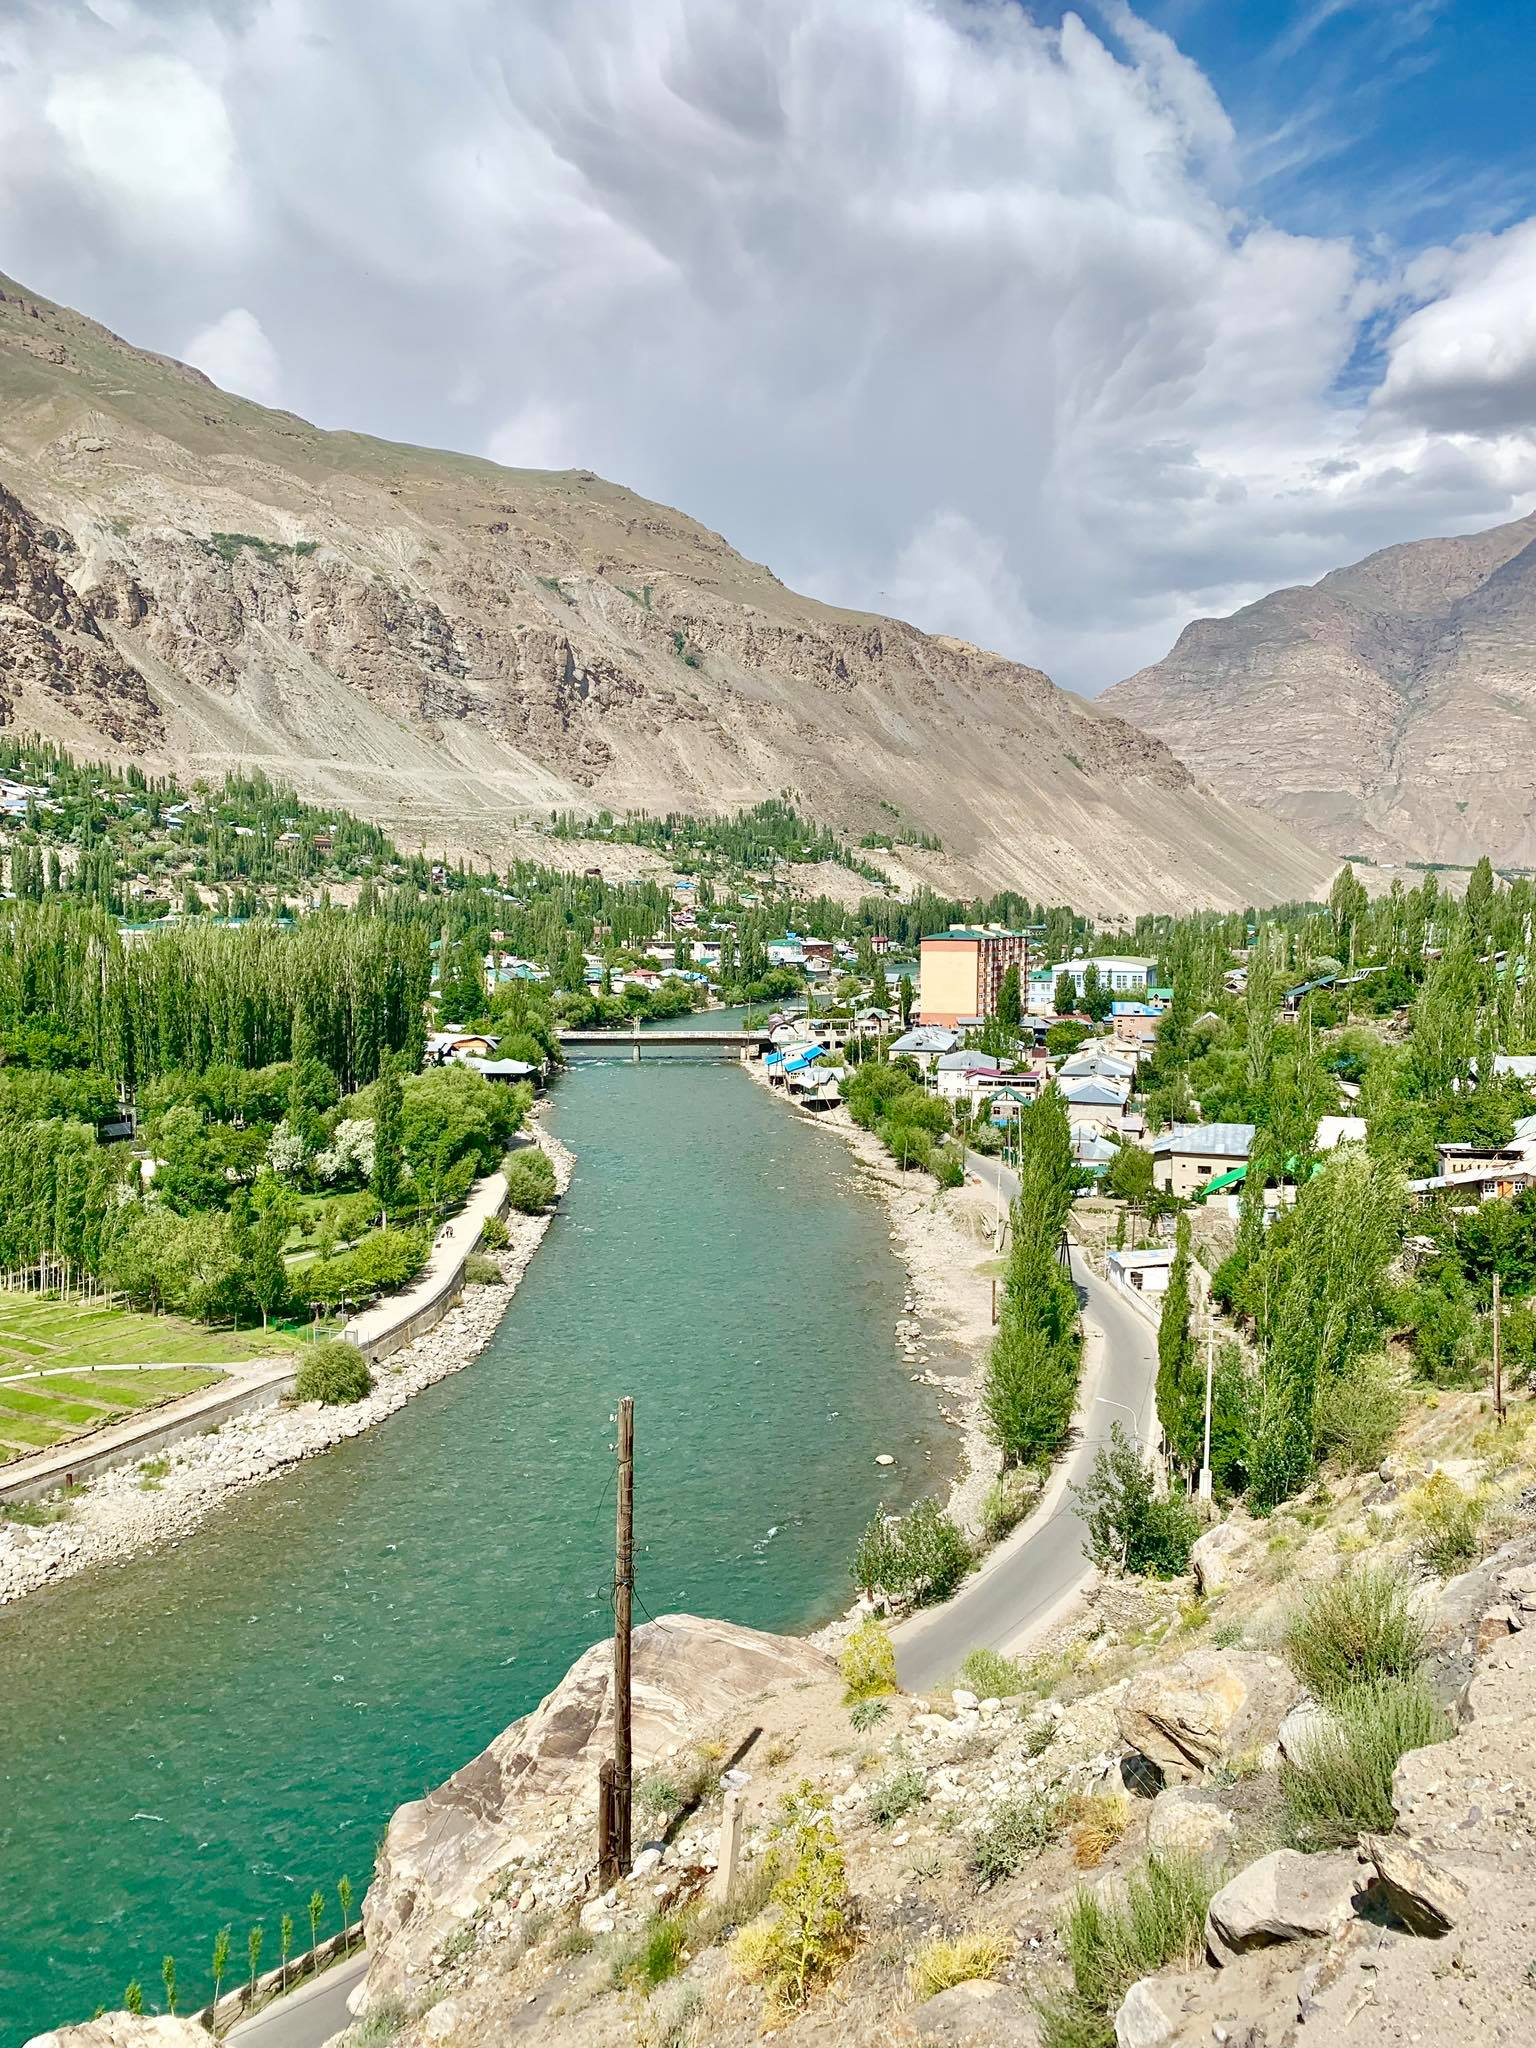 13 Things You Should Not Miss When You Travel the Pamir Highway in Tajikistanv3